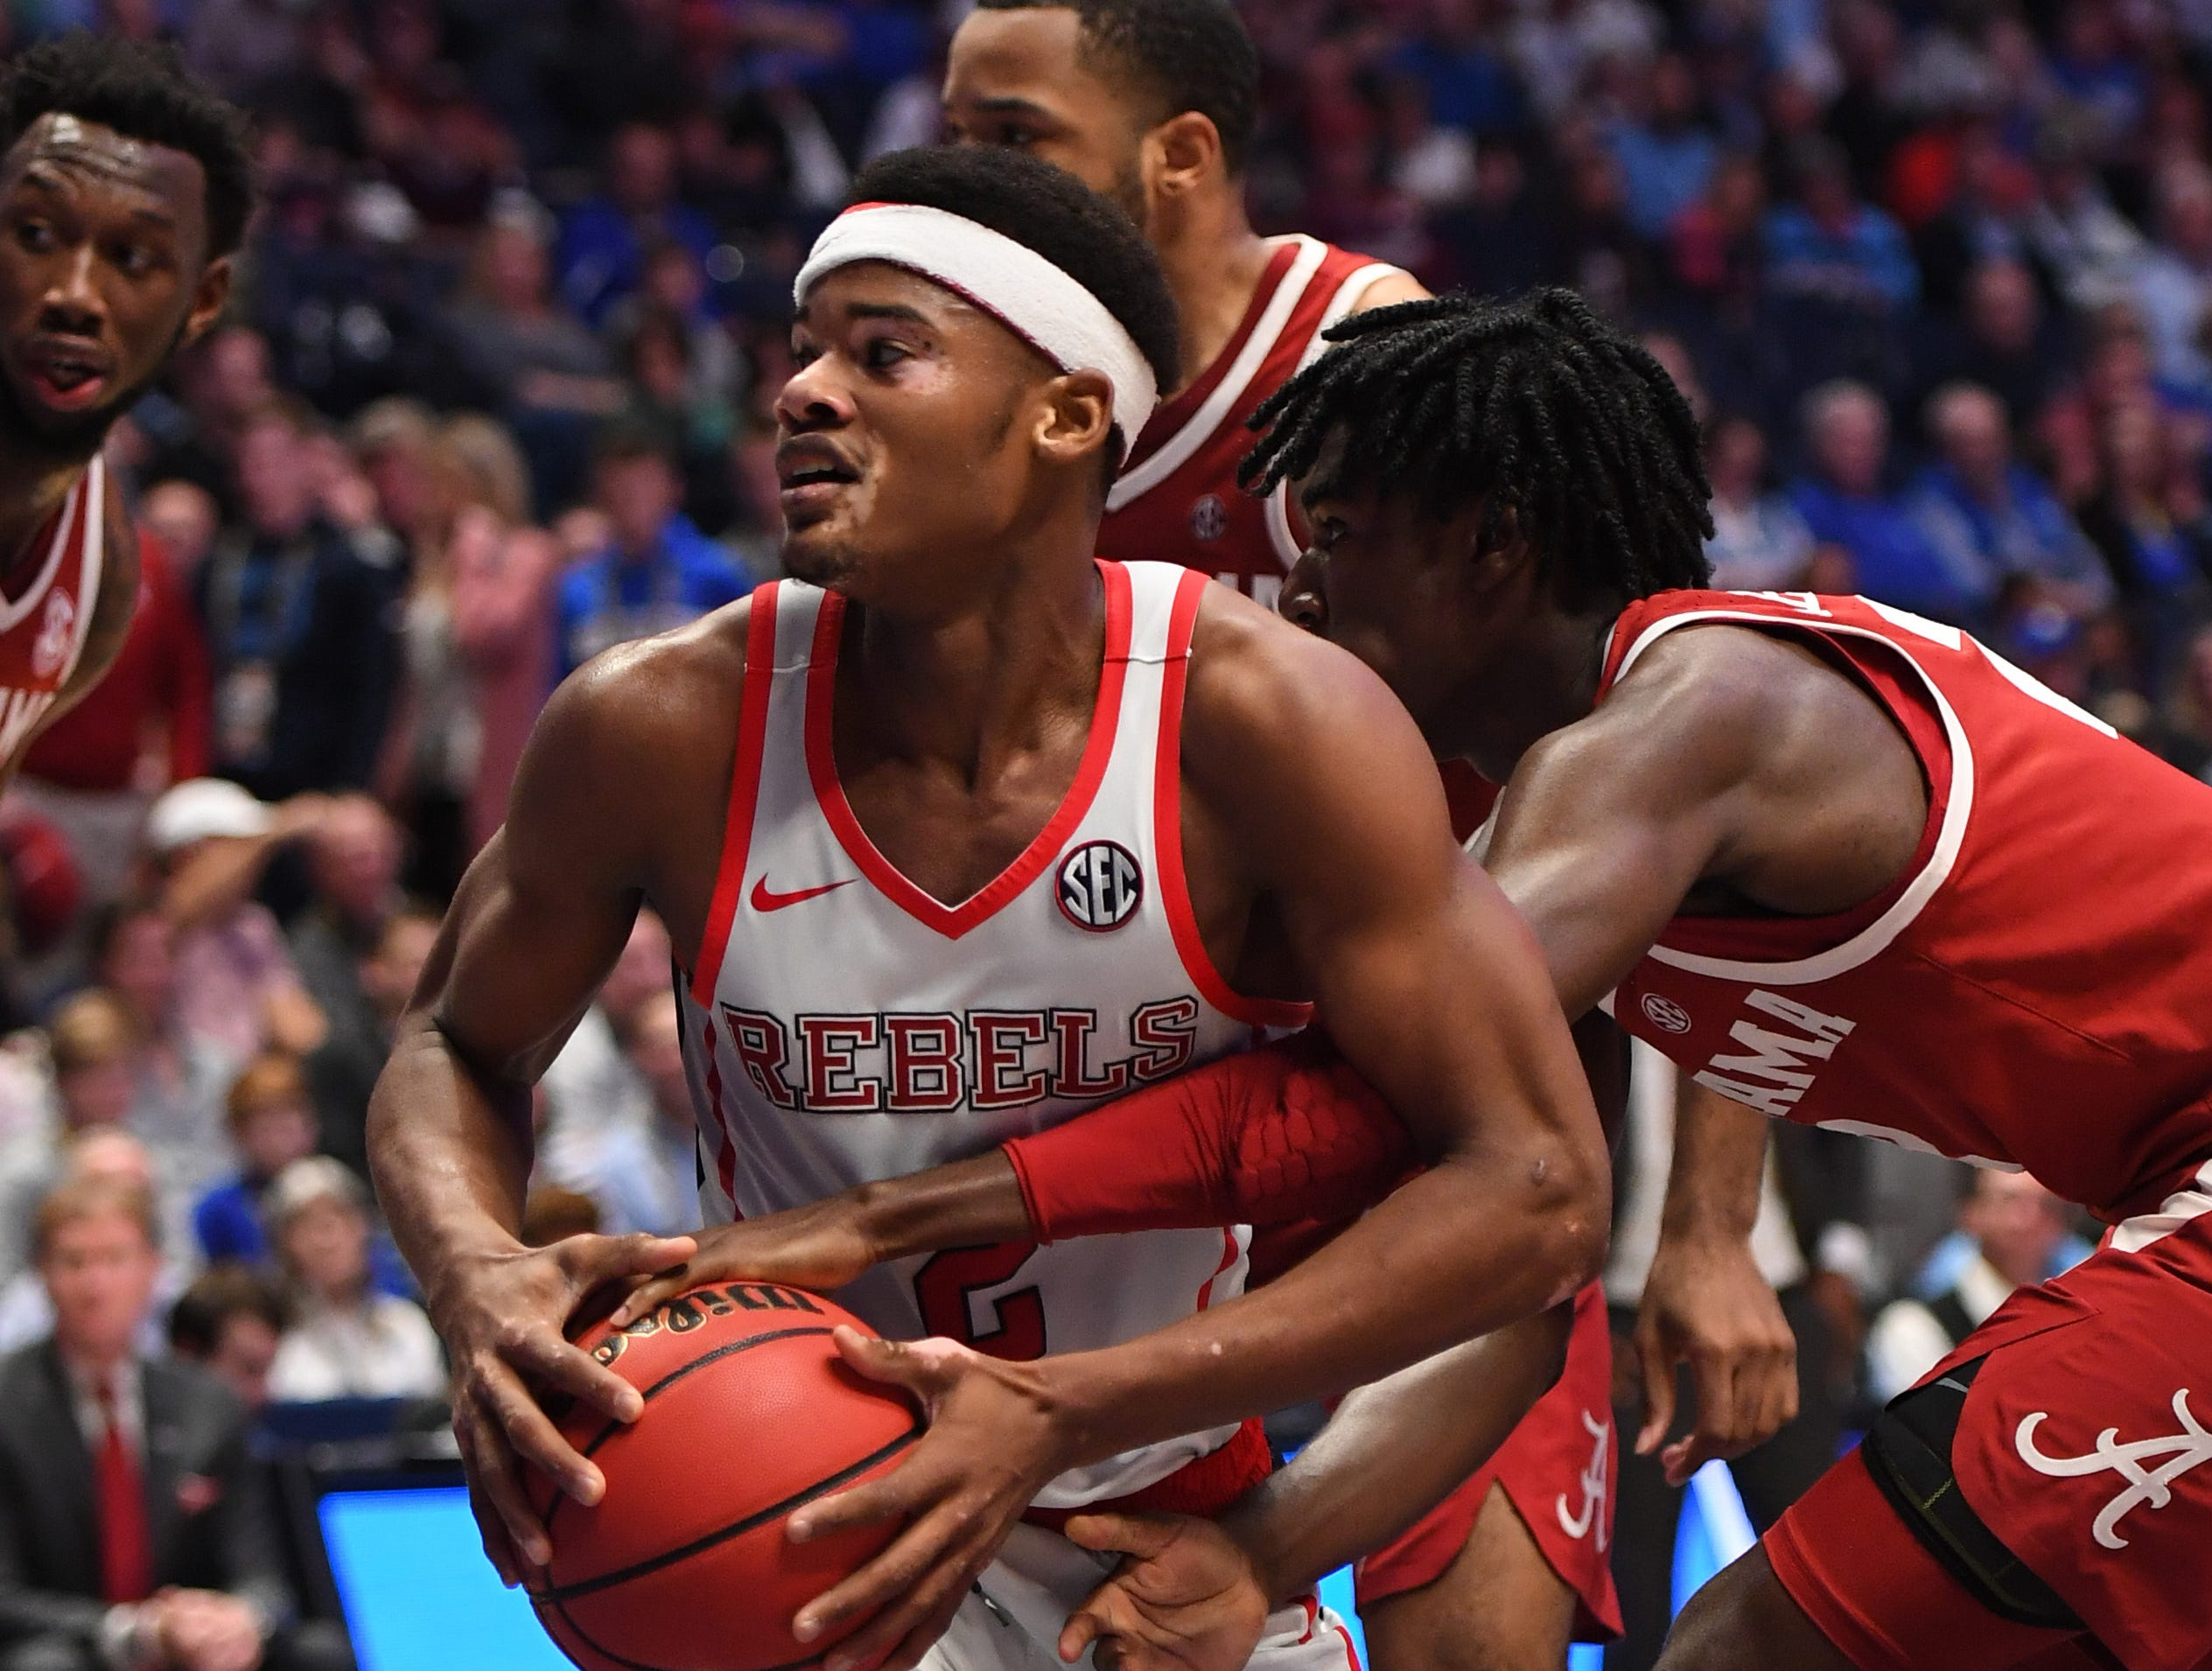 Mar 14, 2019; Nashville, TN, USA; Mississippi Rebels guard Devontae Shuler (2) after grabbing a rebound in the lane against the Alabama Crimson Tide during the first half of the SEC conference tournament at Bridgestone Arena. Mandatory Credit: Christopher Hanewinckel-USA TODAY Sports